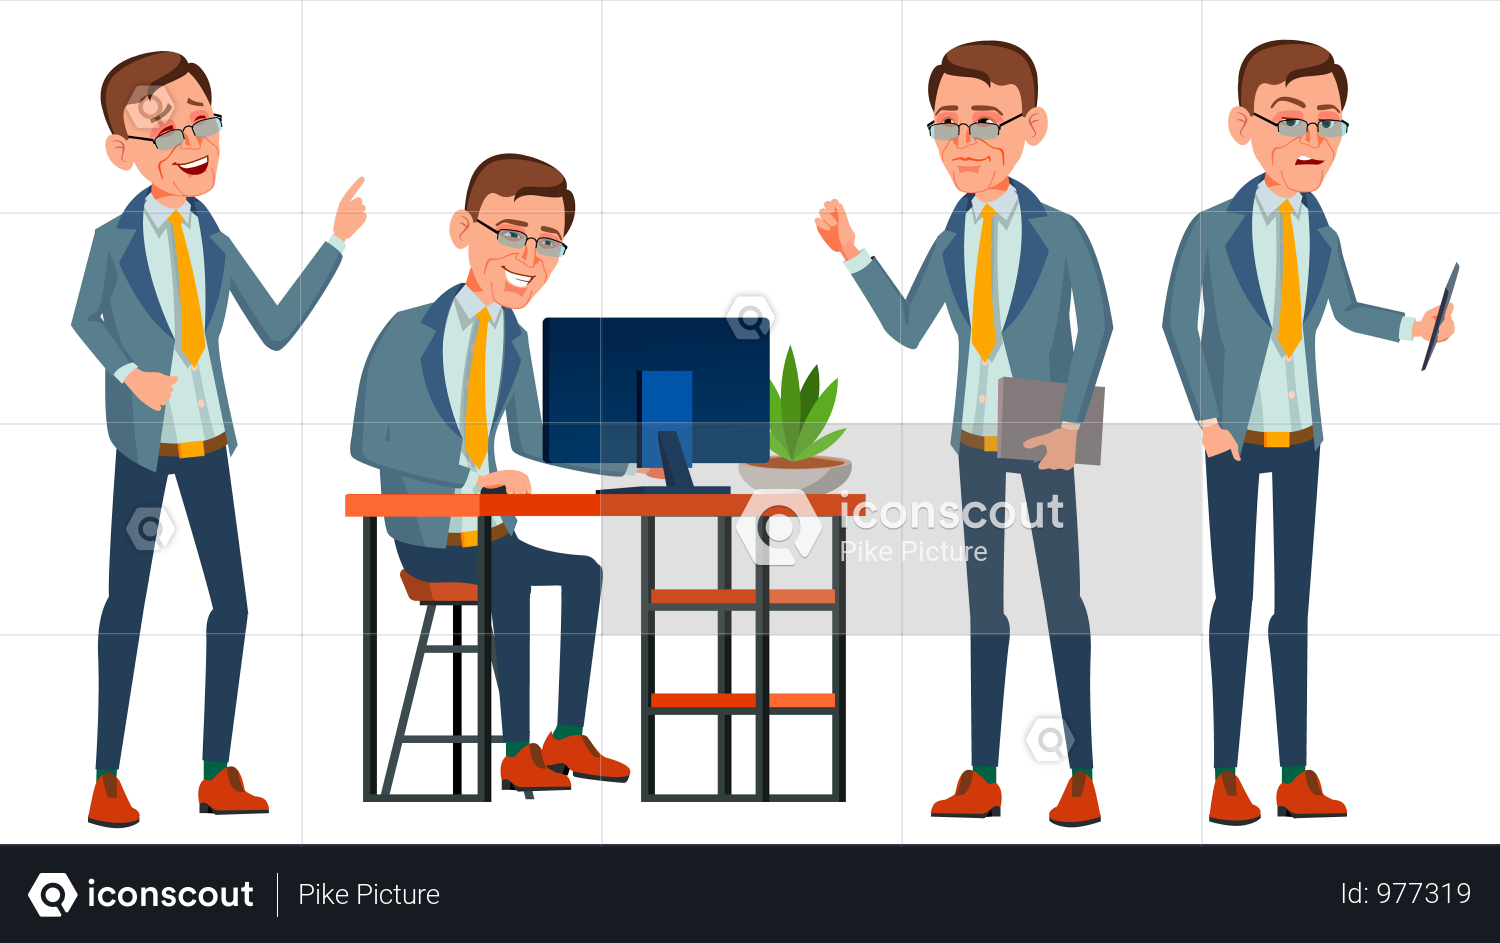 Premium Employee Working In Office On Desk Illustration Download In Png Vector Format Flat Design Illustration Illustration Character Design